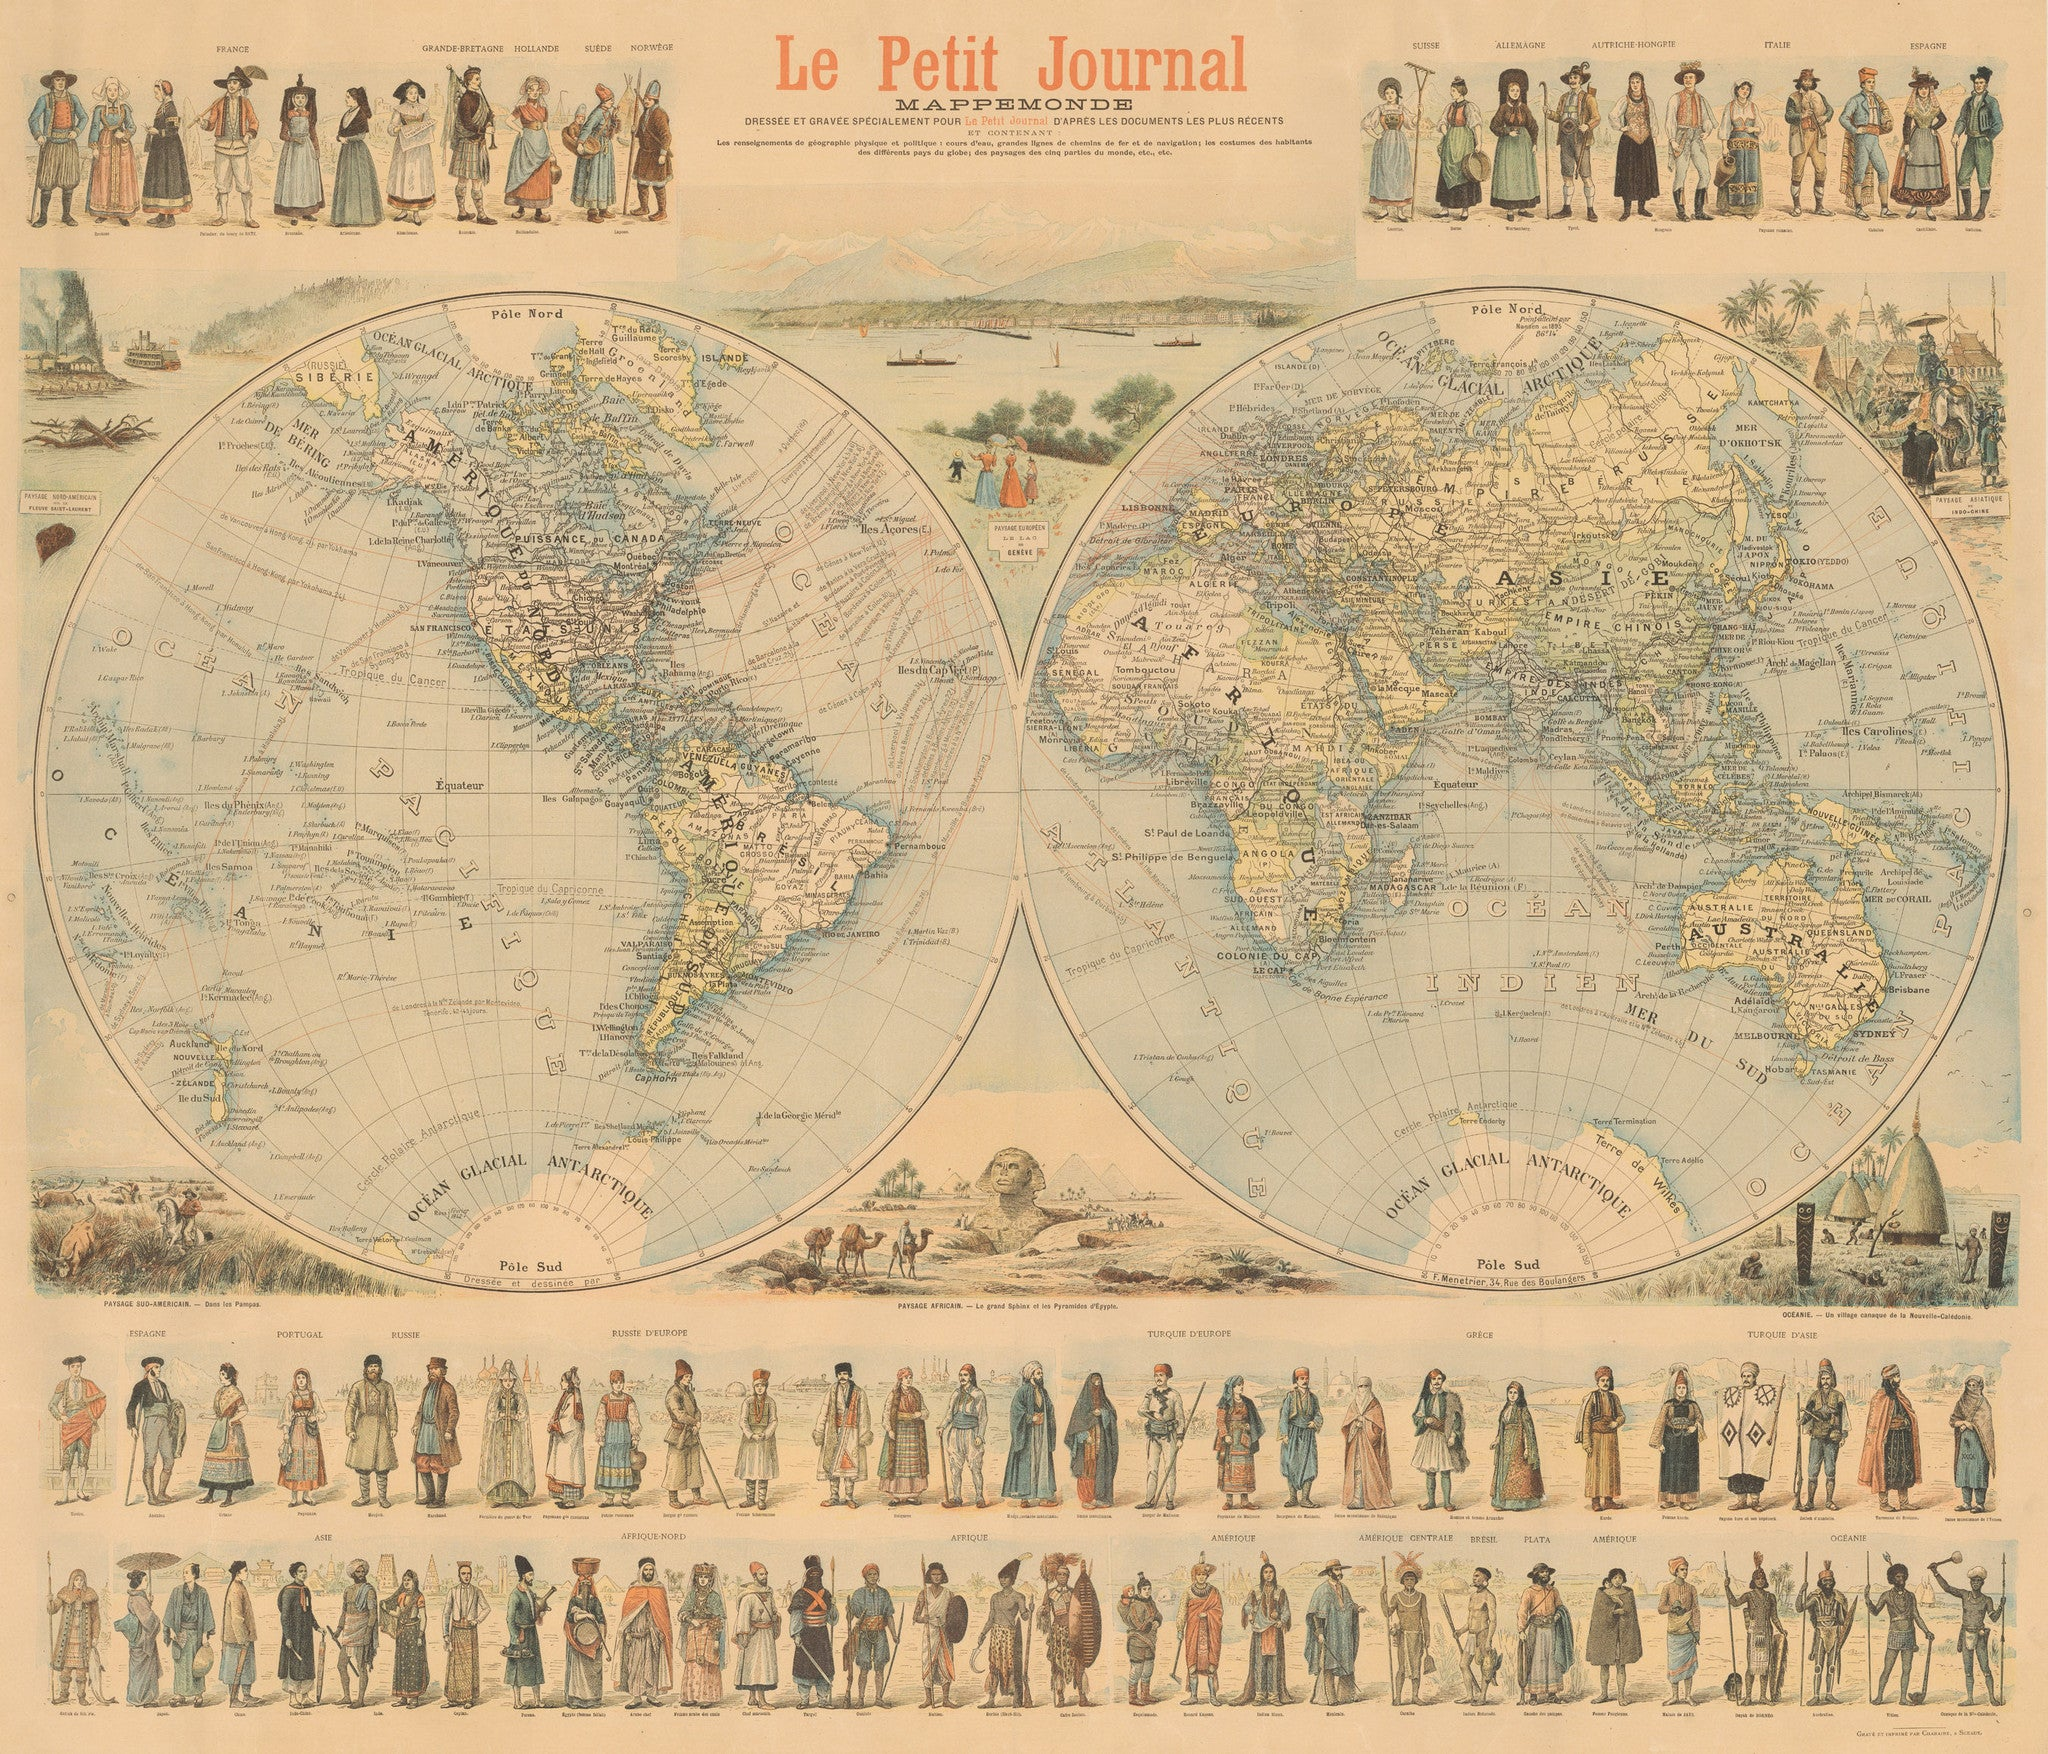 1900 Le Petit Journal Mappemonde - theVintageMapShop.com - the ...